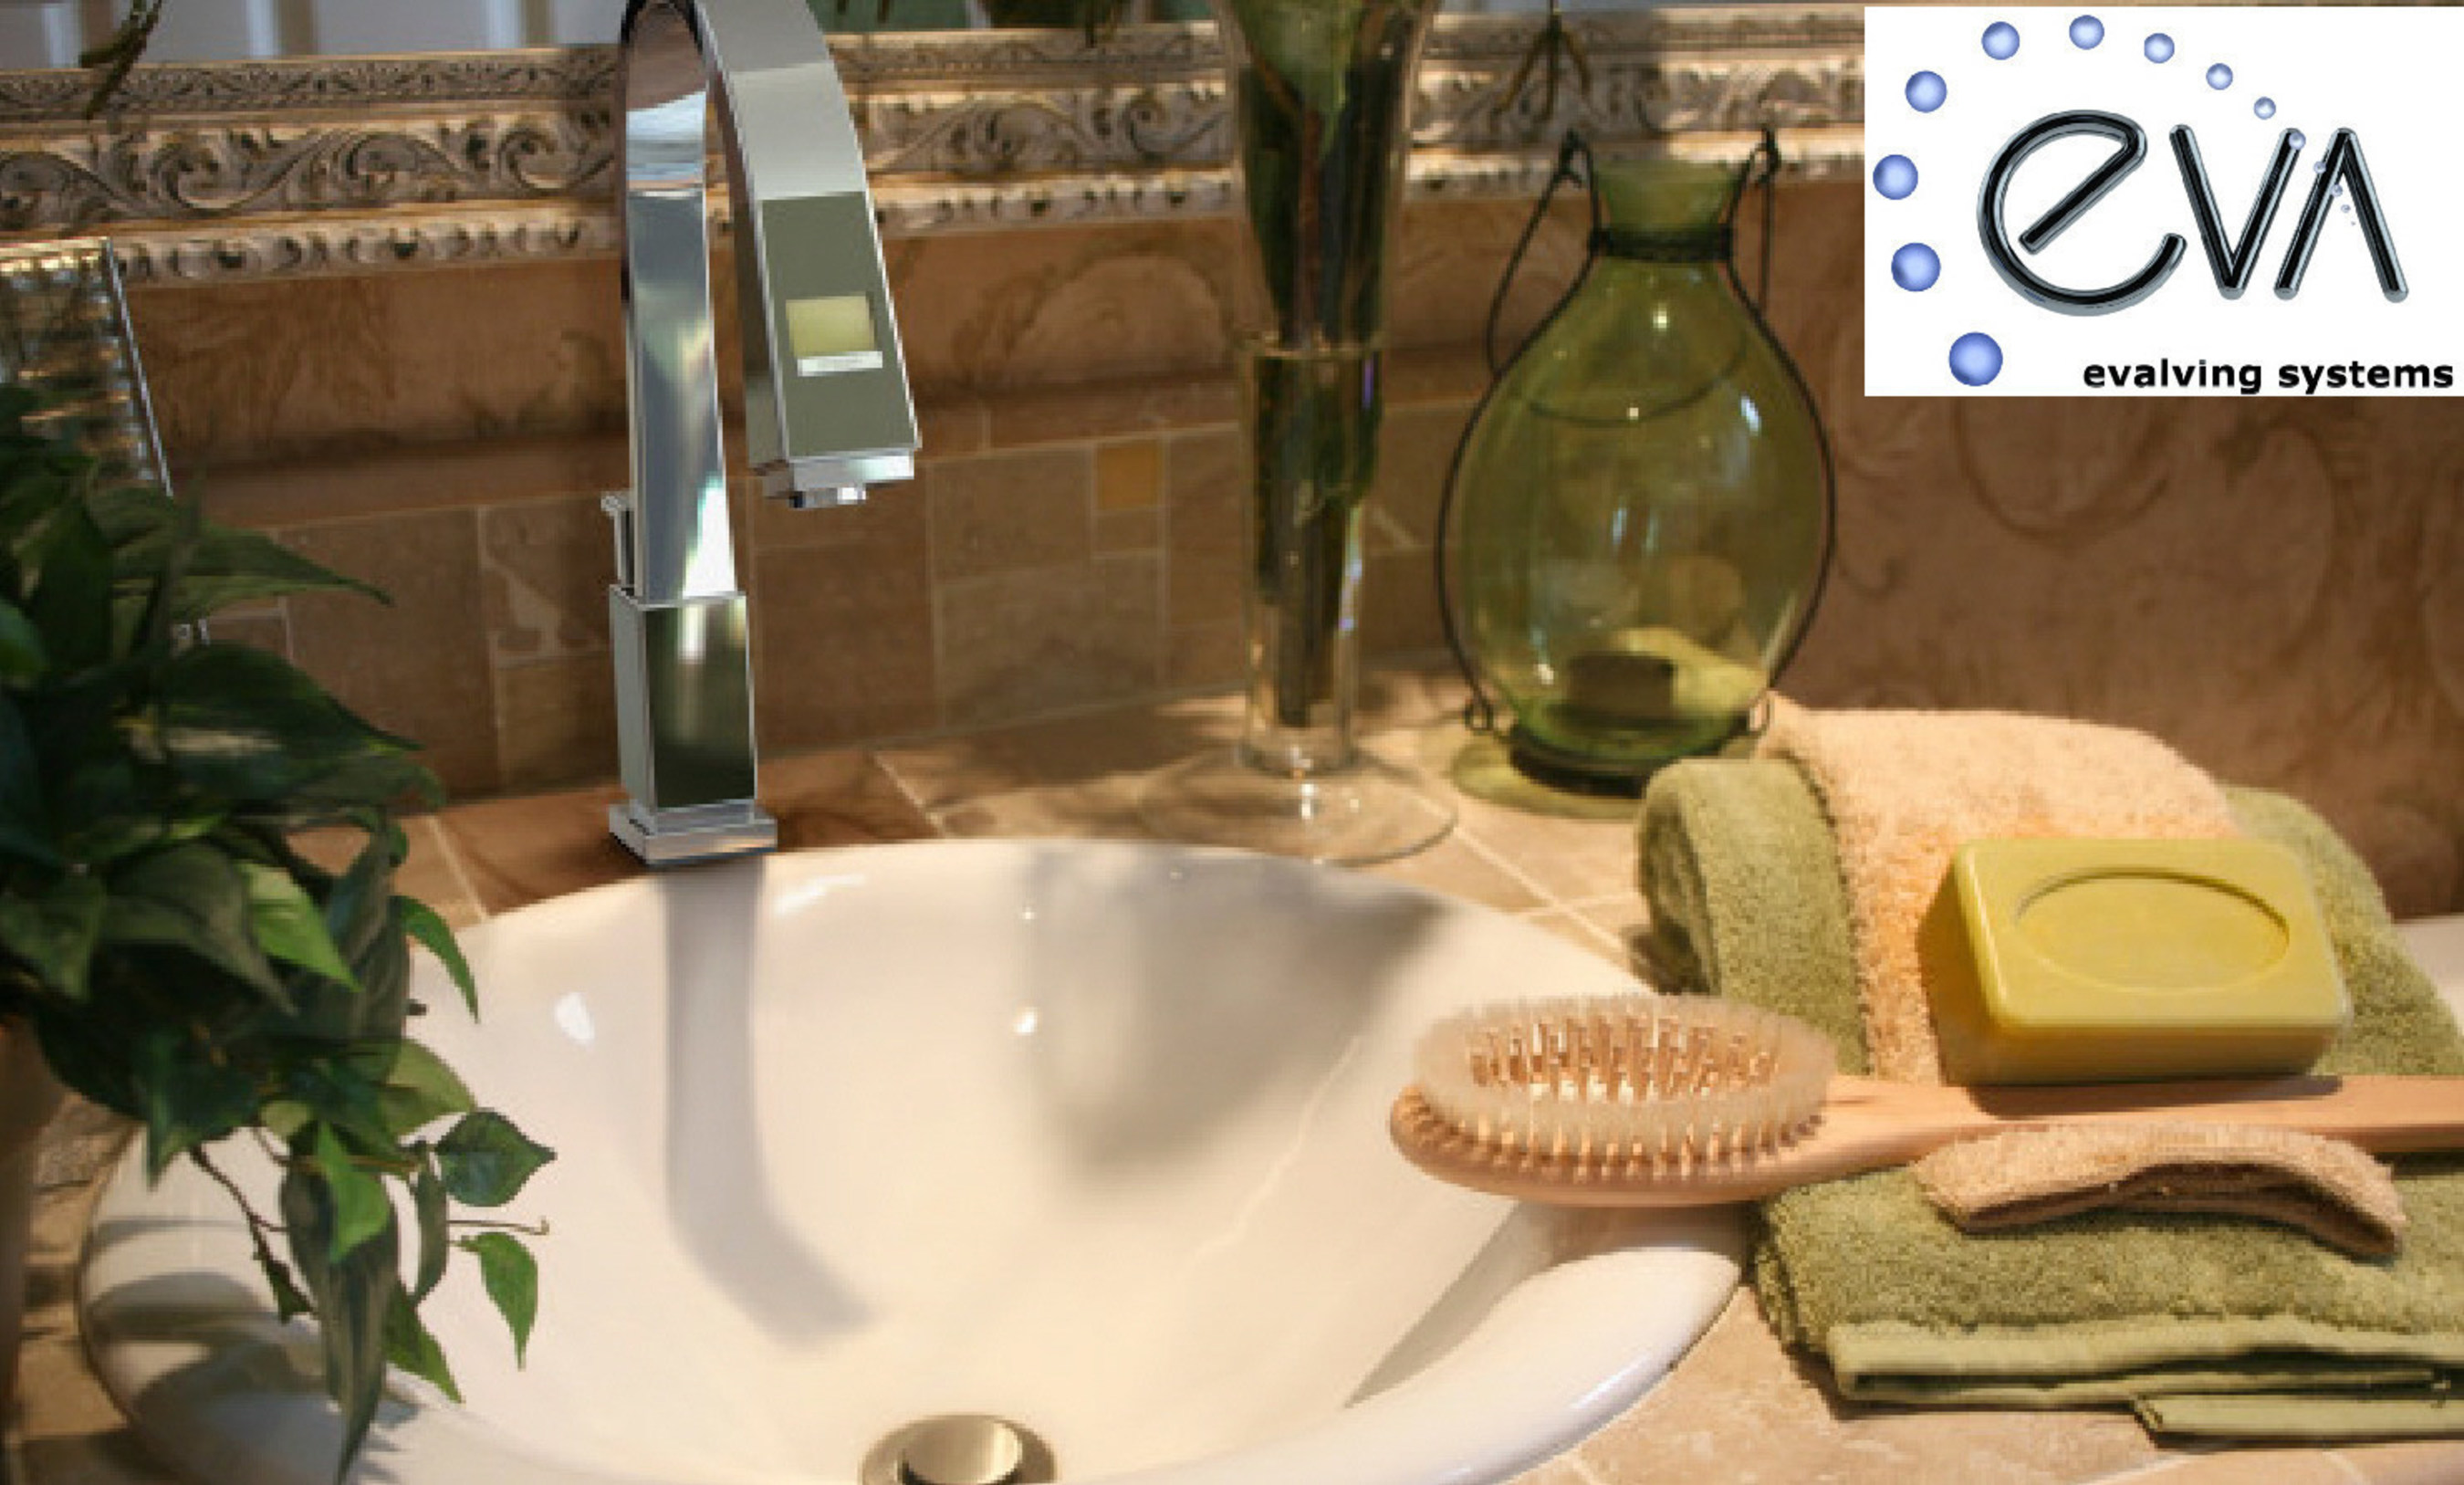 LAVi Brings the Faucet into the Modern World with Inspired Ingenuity